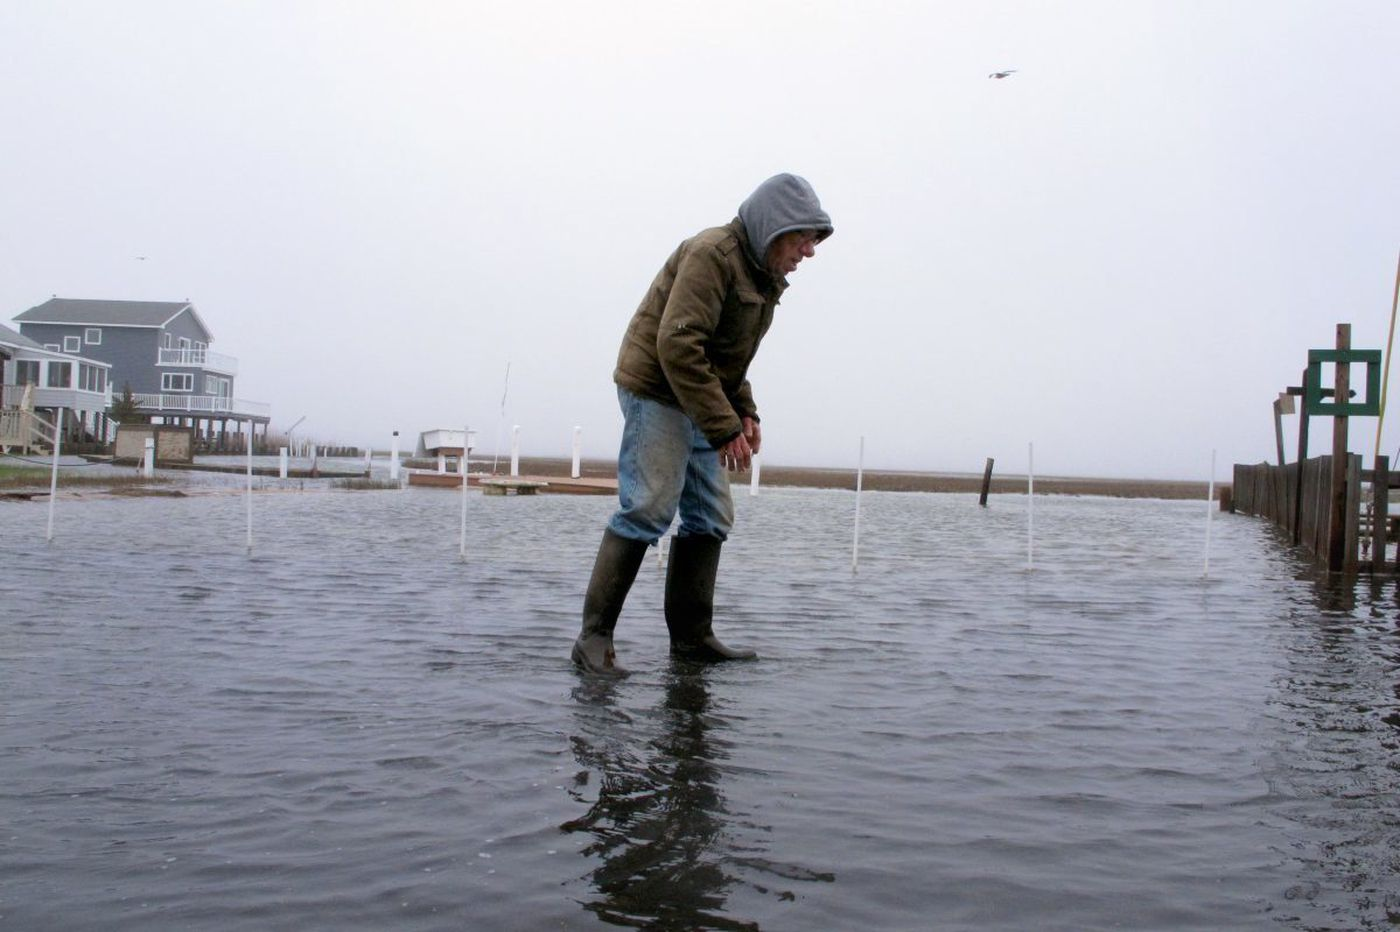 Scientists: 21 N.J. towns to face chronic flooding by 2035